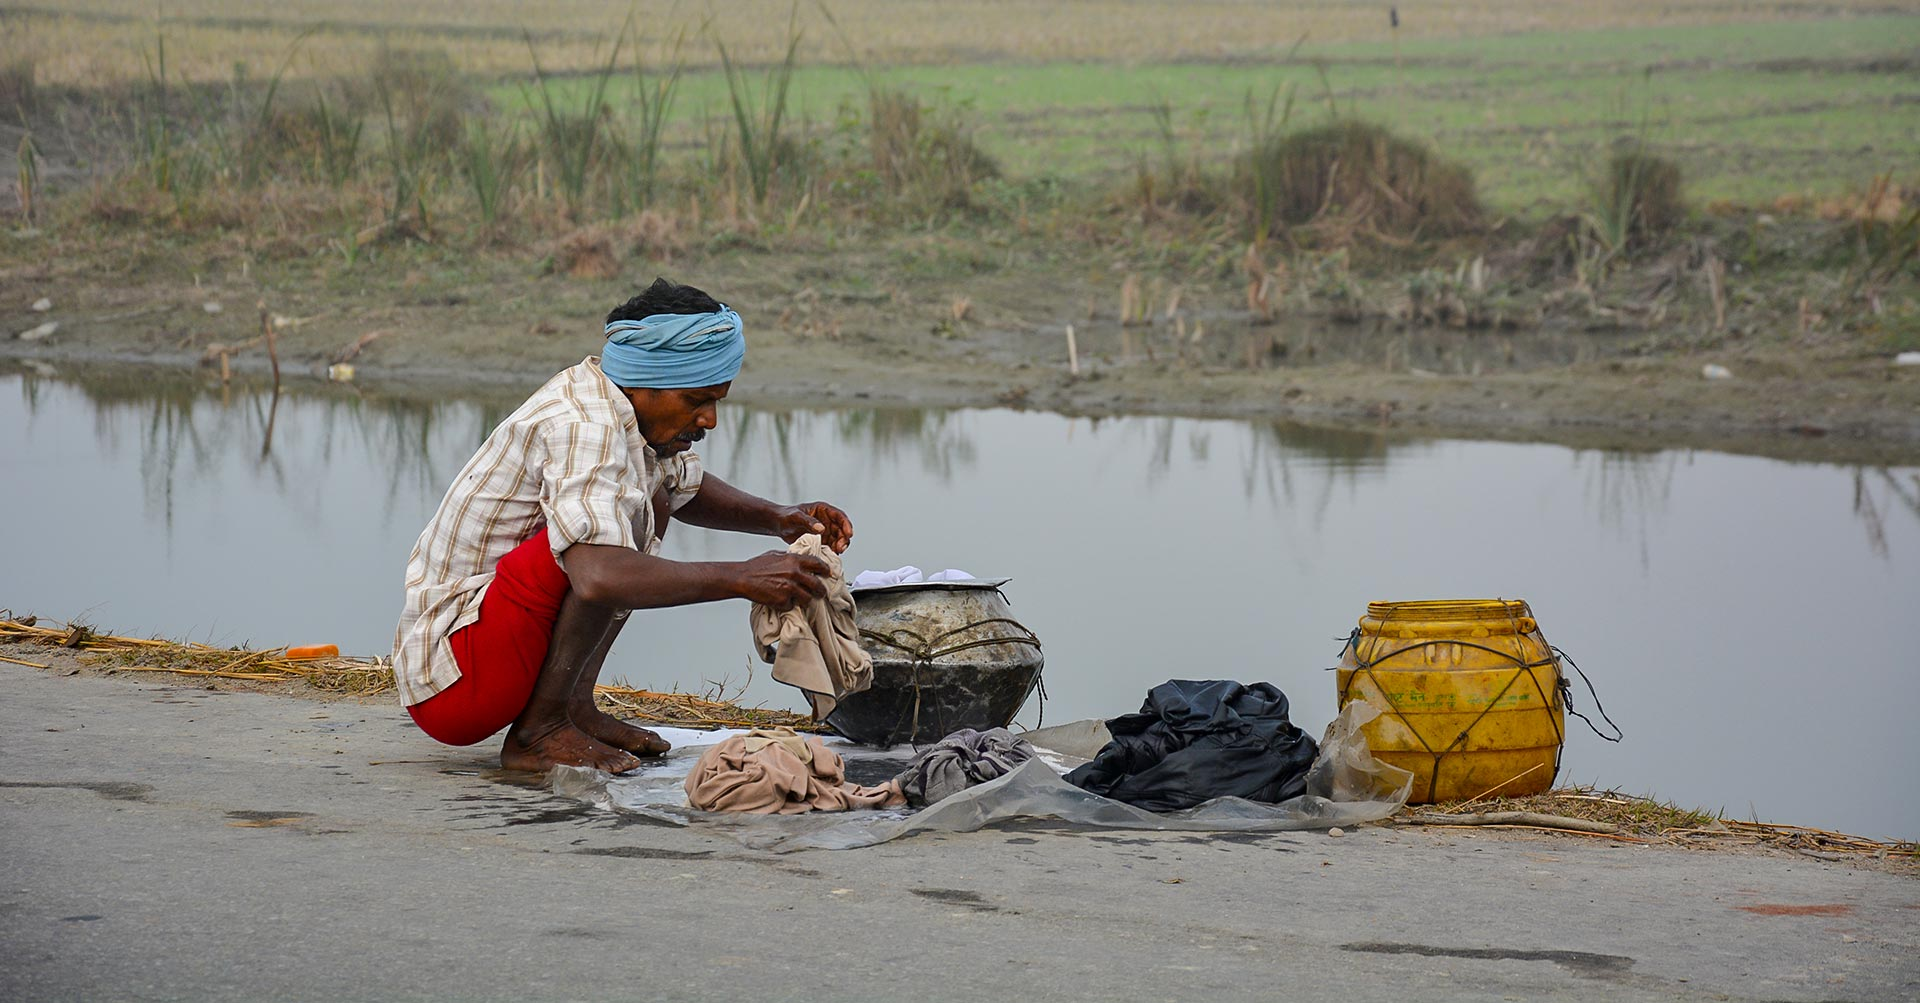 Strengthening People's Perspective on Water Commons in South Asia